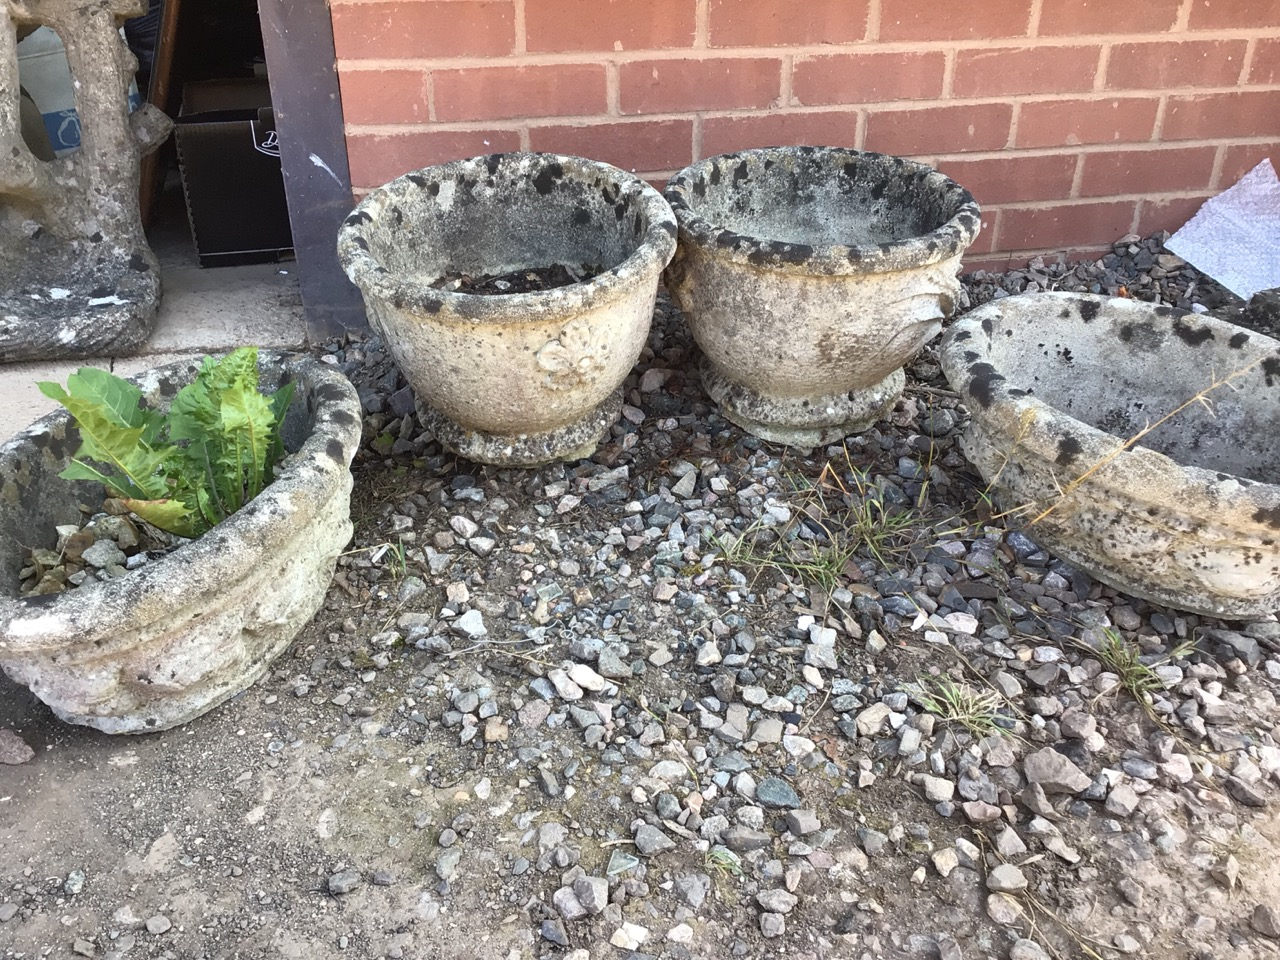 Four decorative concrete planters two circular and two oval. W:34cm x D:34cm x H:24cm